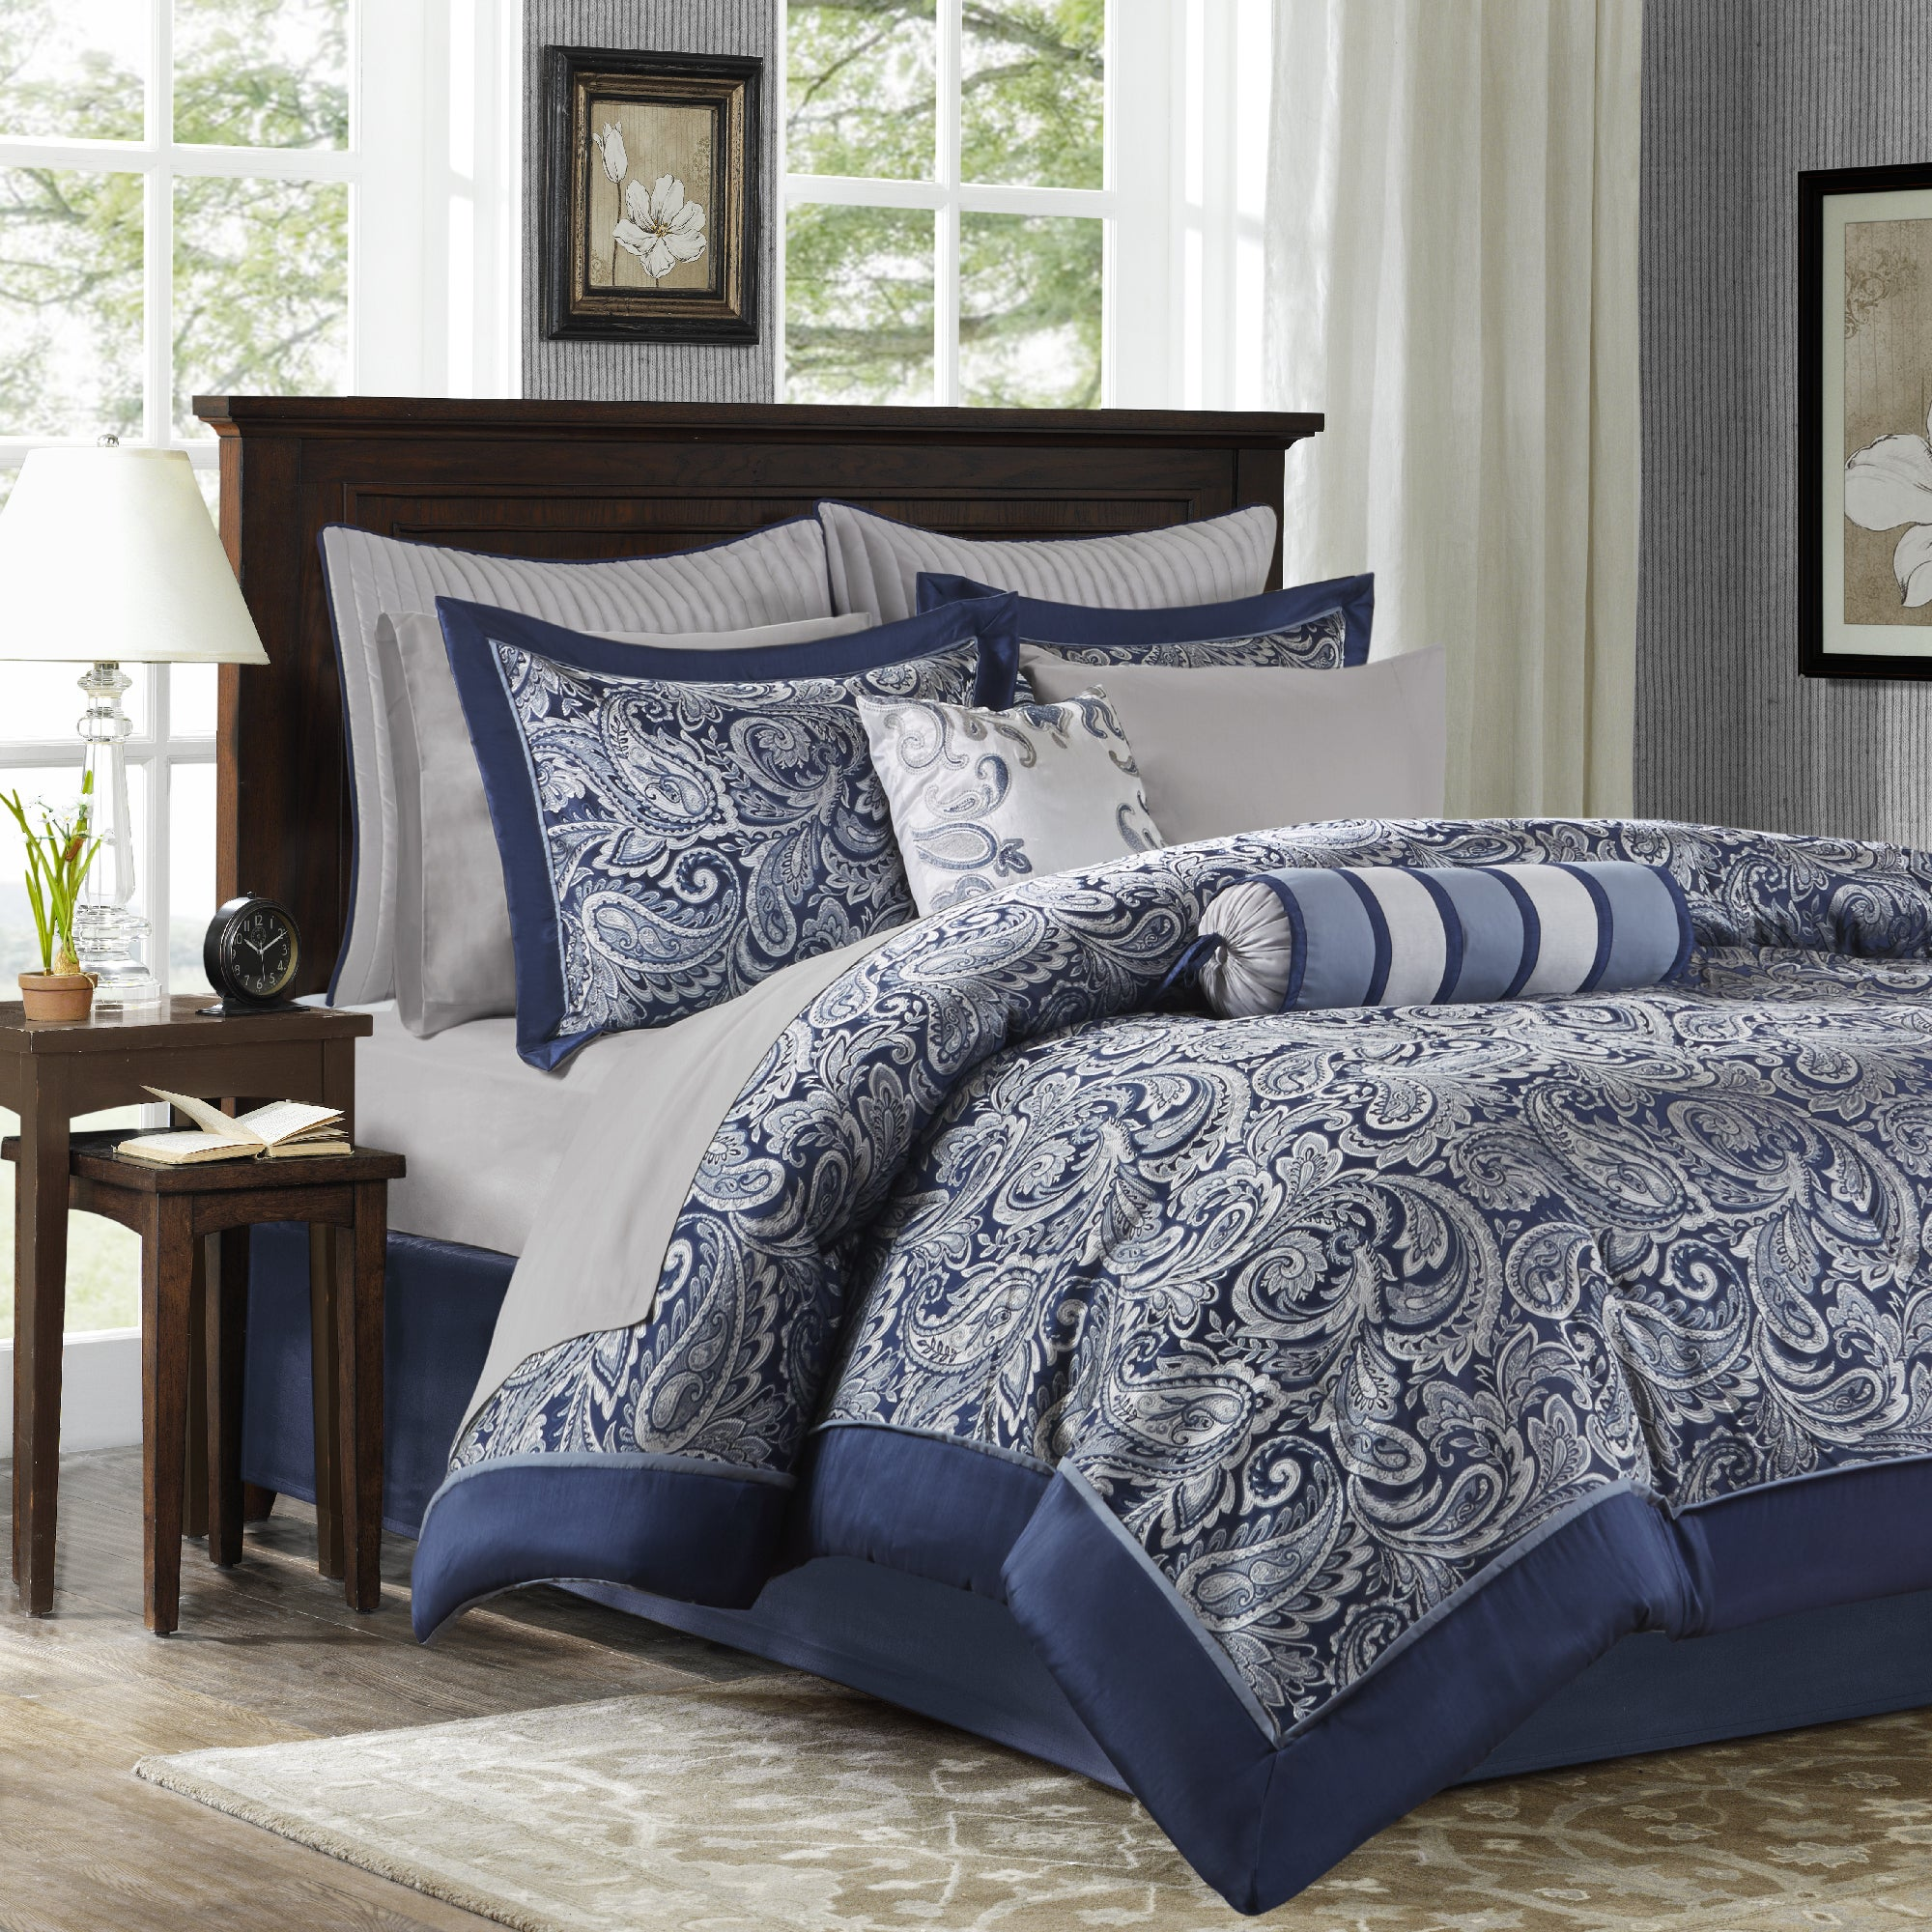 bedding full com in a walmart nfl complete comforter bed dallas set comforters ip cowboys bag